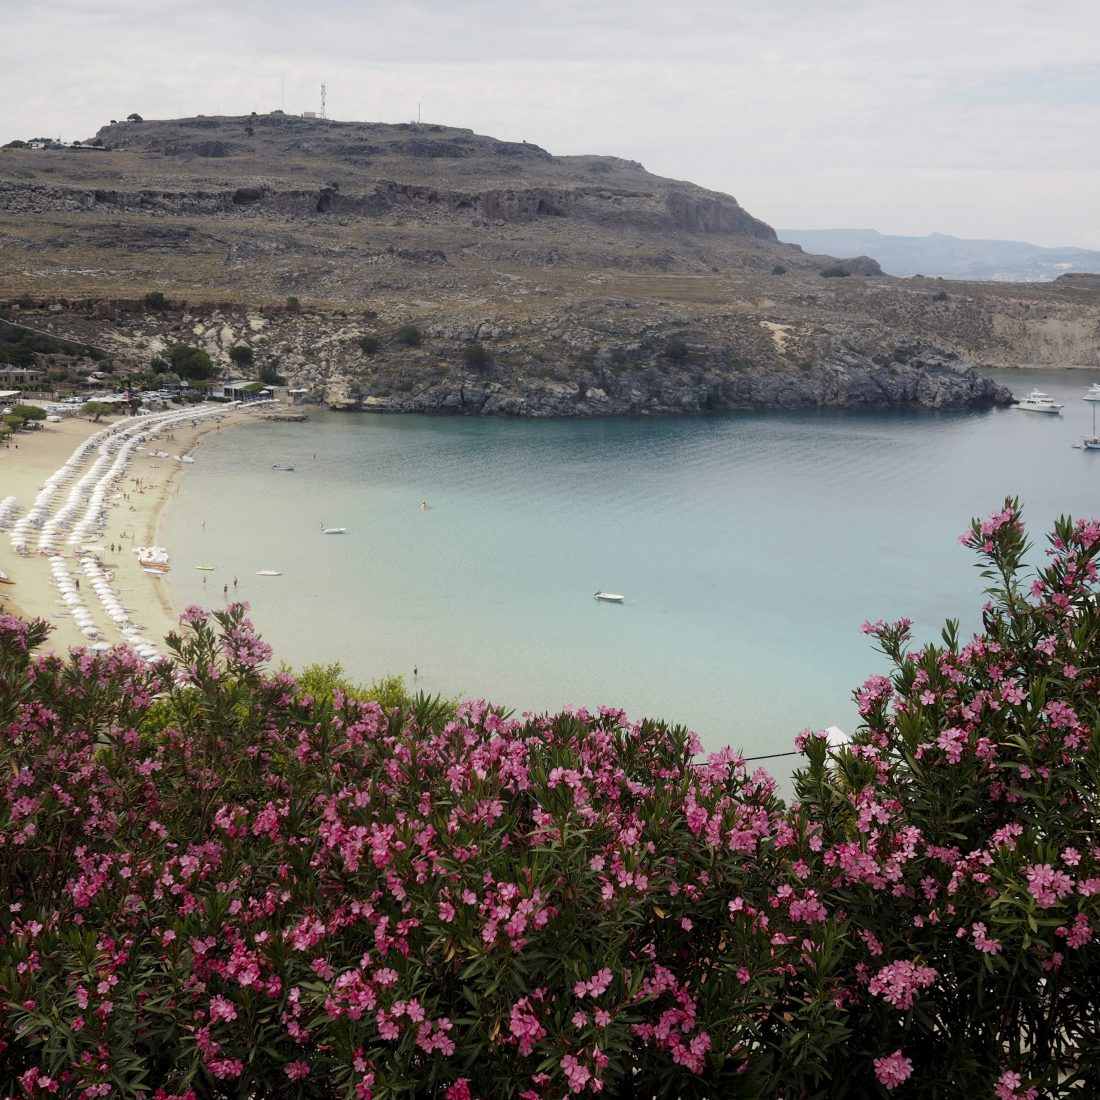 3 days in Rhodos – Old town and sand beaches in Falikari : Ladiko beach and Lindos : Megali Paralia beach